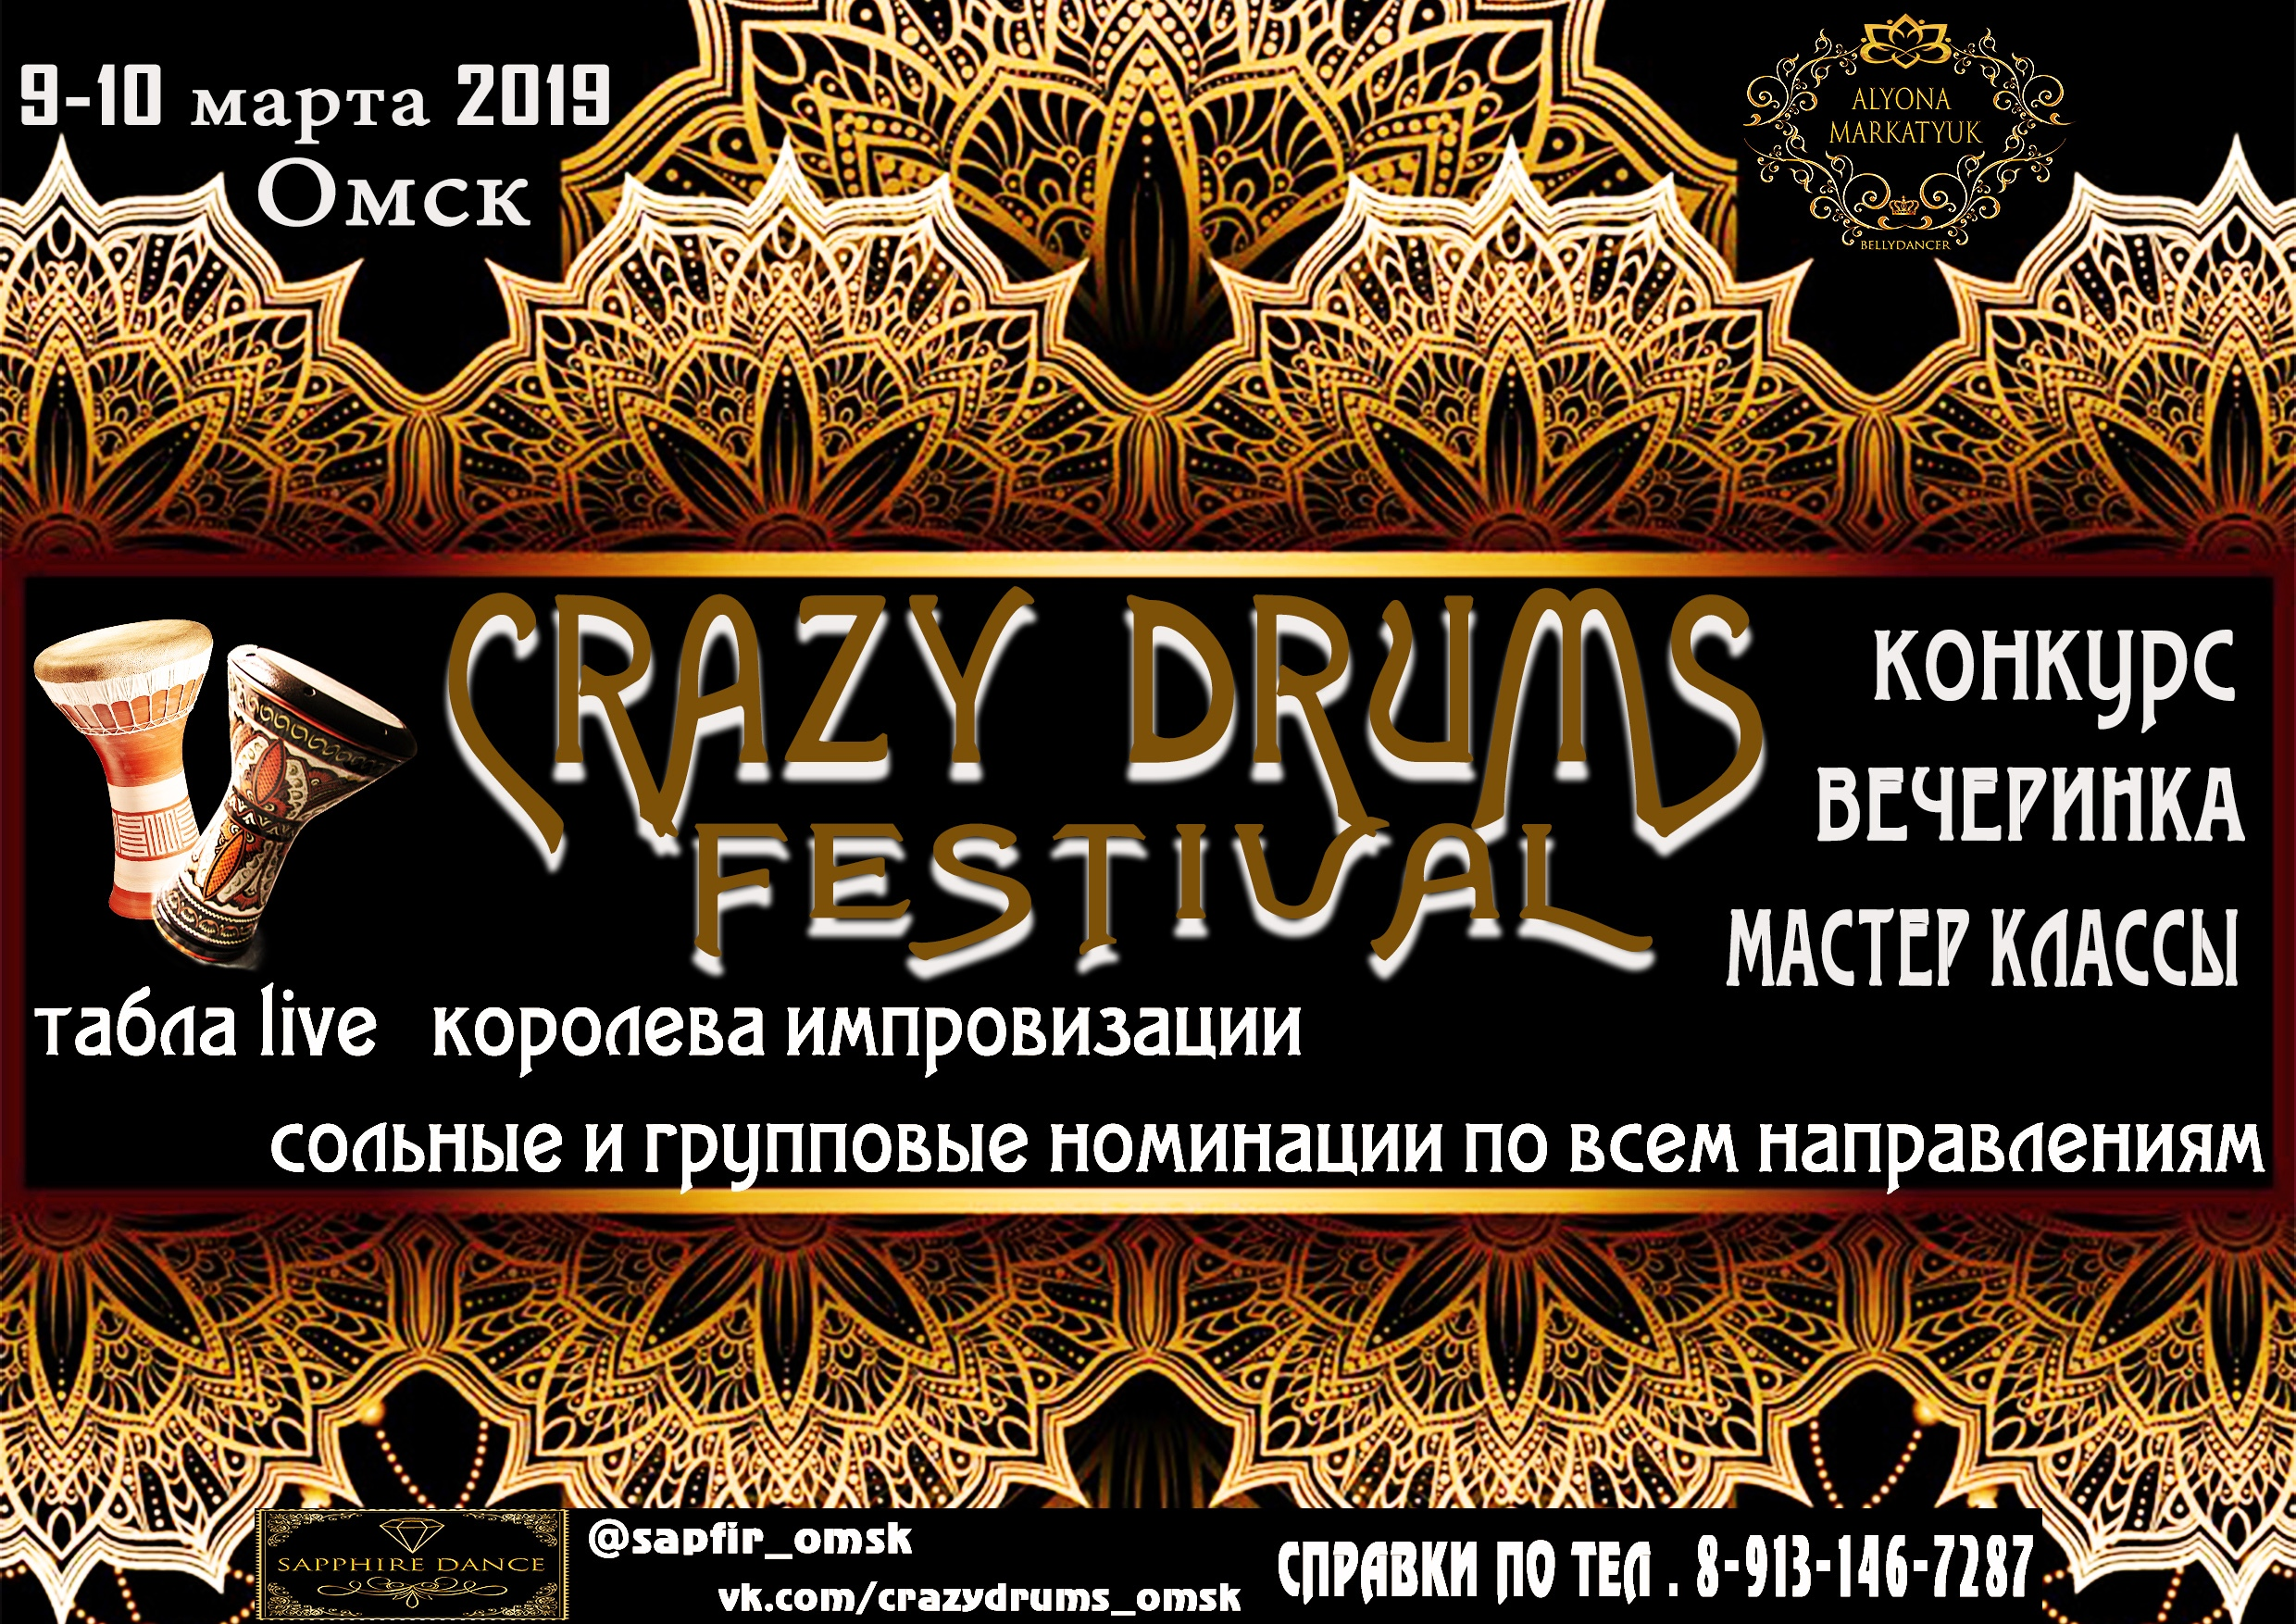 Фестиваль Crazy Drums